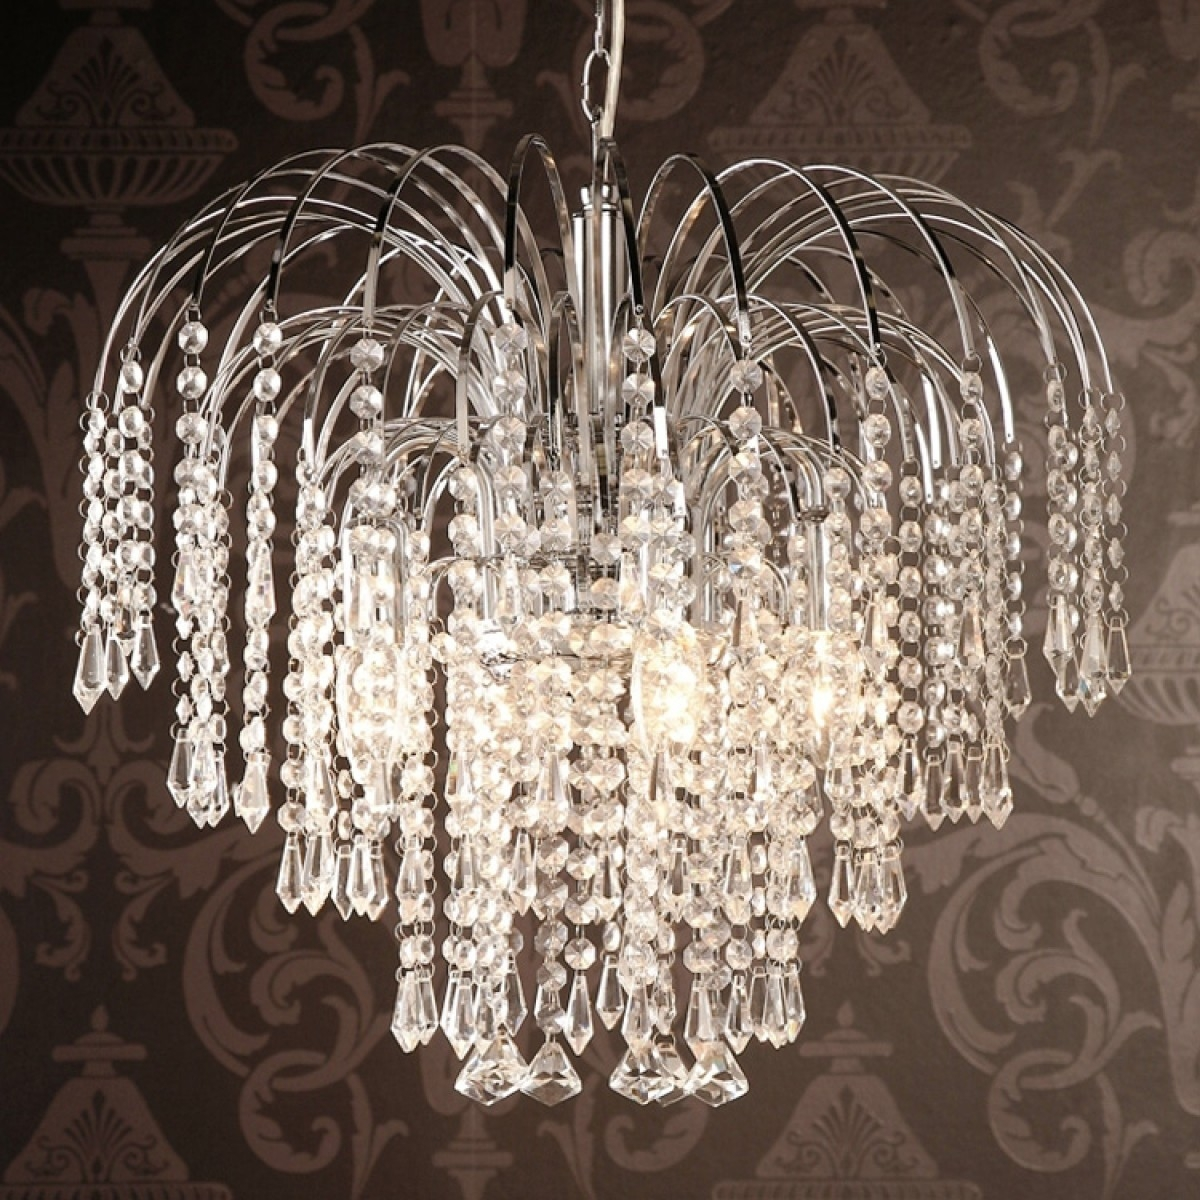 Four Light Chrome Crystal Chandelier In Chrome Crystal Chandelier (Image 10 of 15)